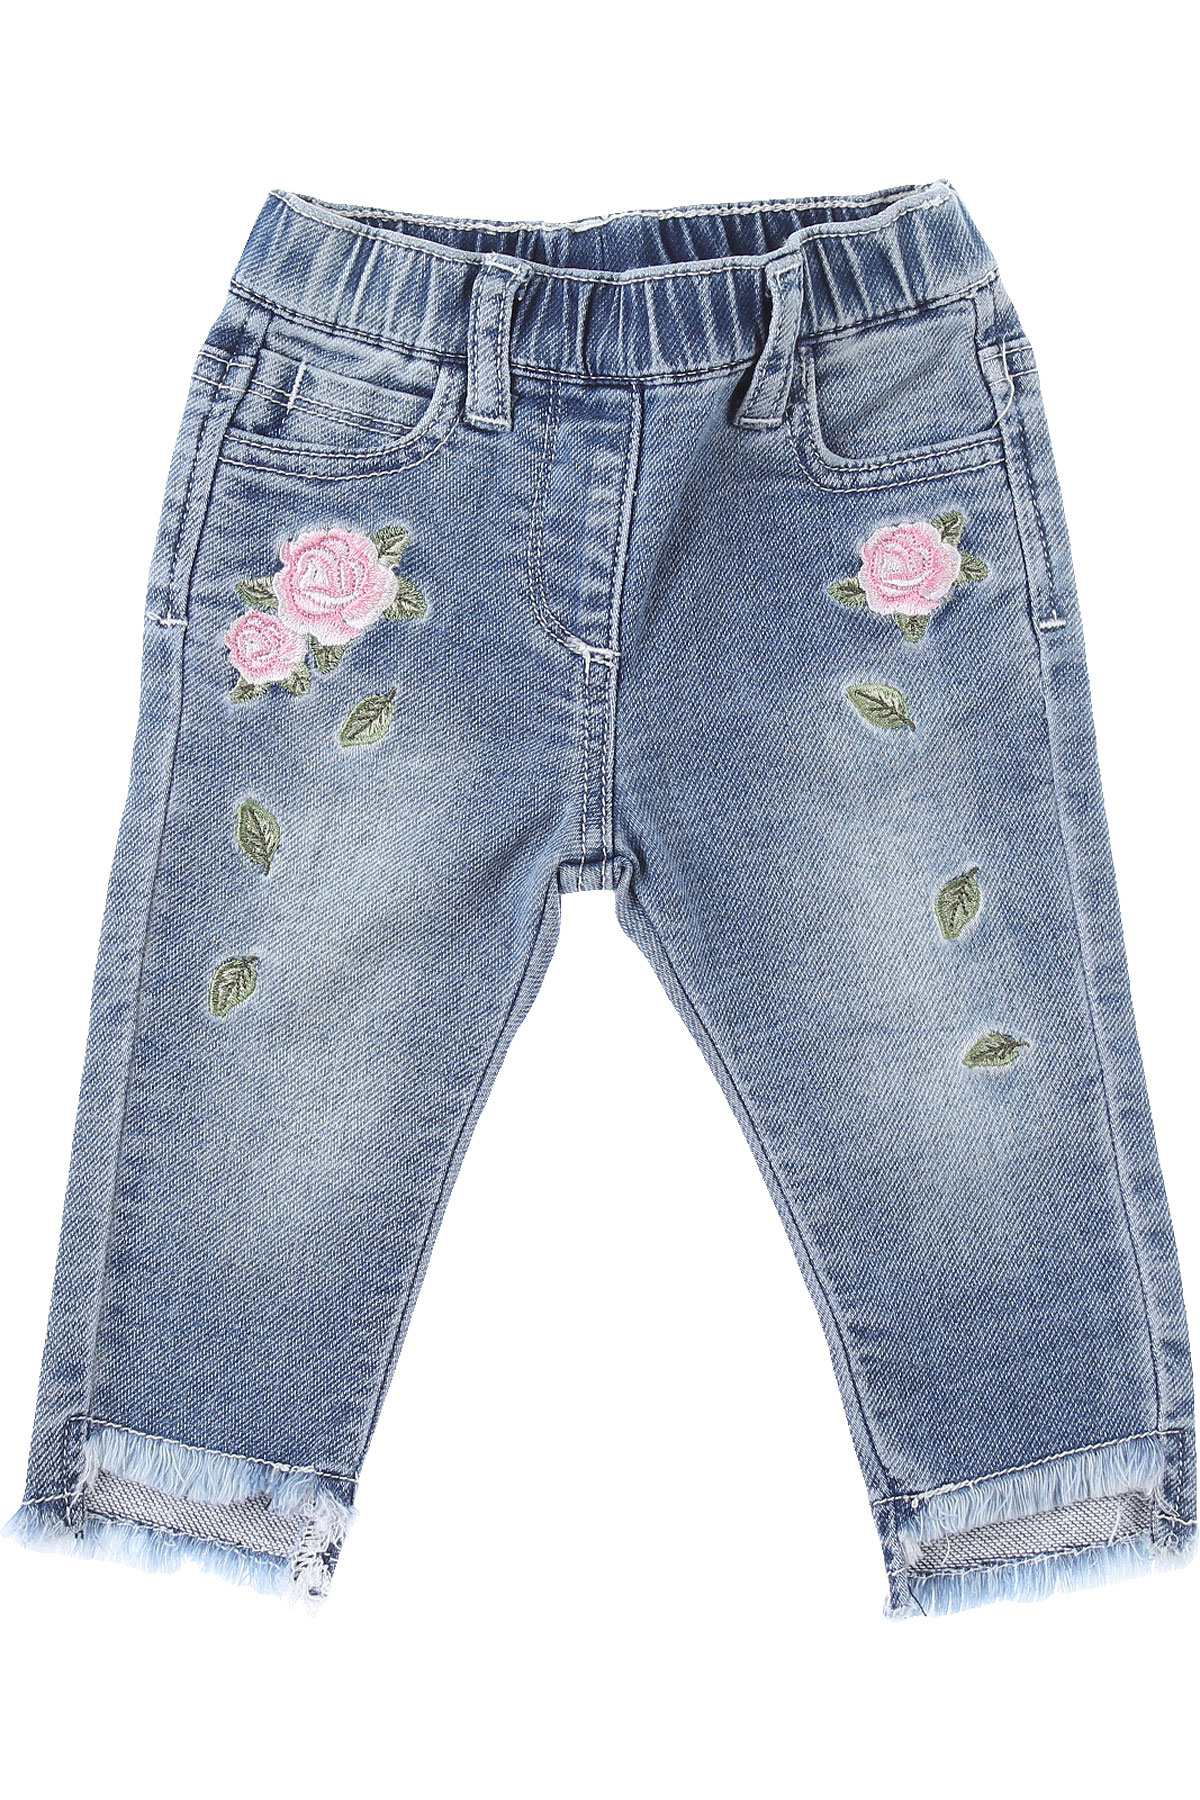 Monnalisa Baby Jeans for Girls On Sale, Blue Denim, Cotton, 2019, 12M 18M 2Y 3Y 9M